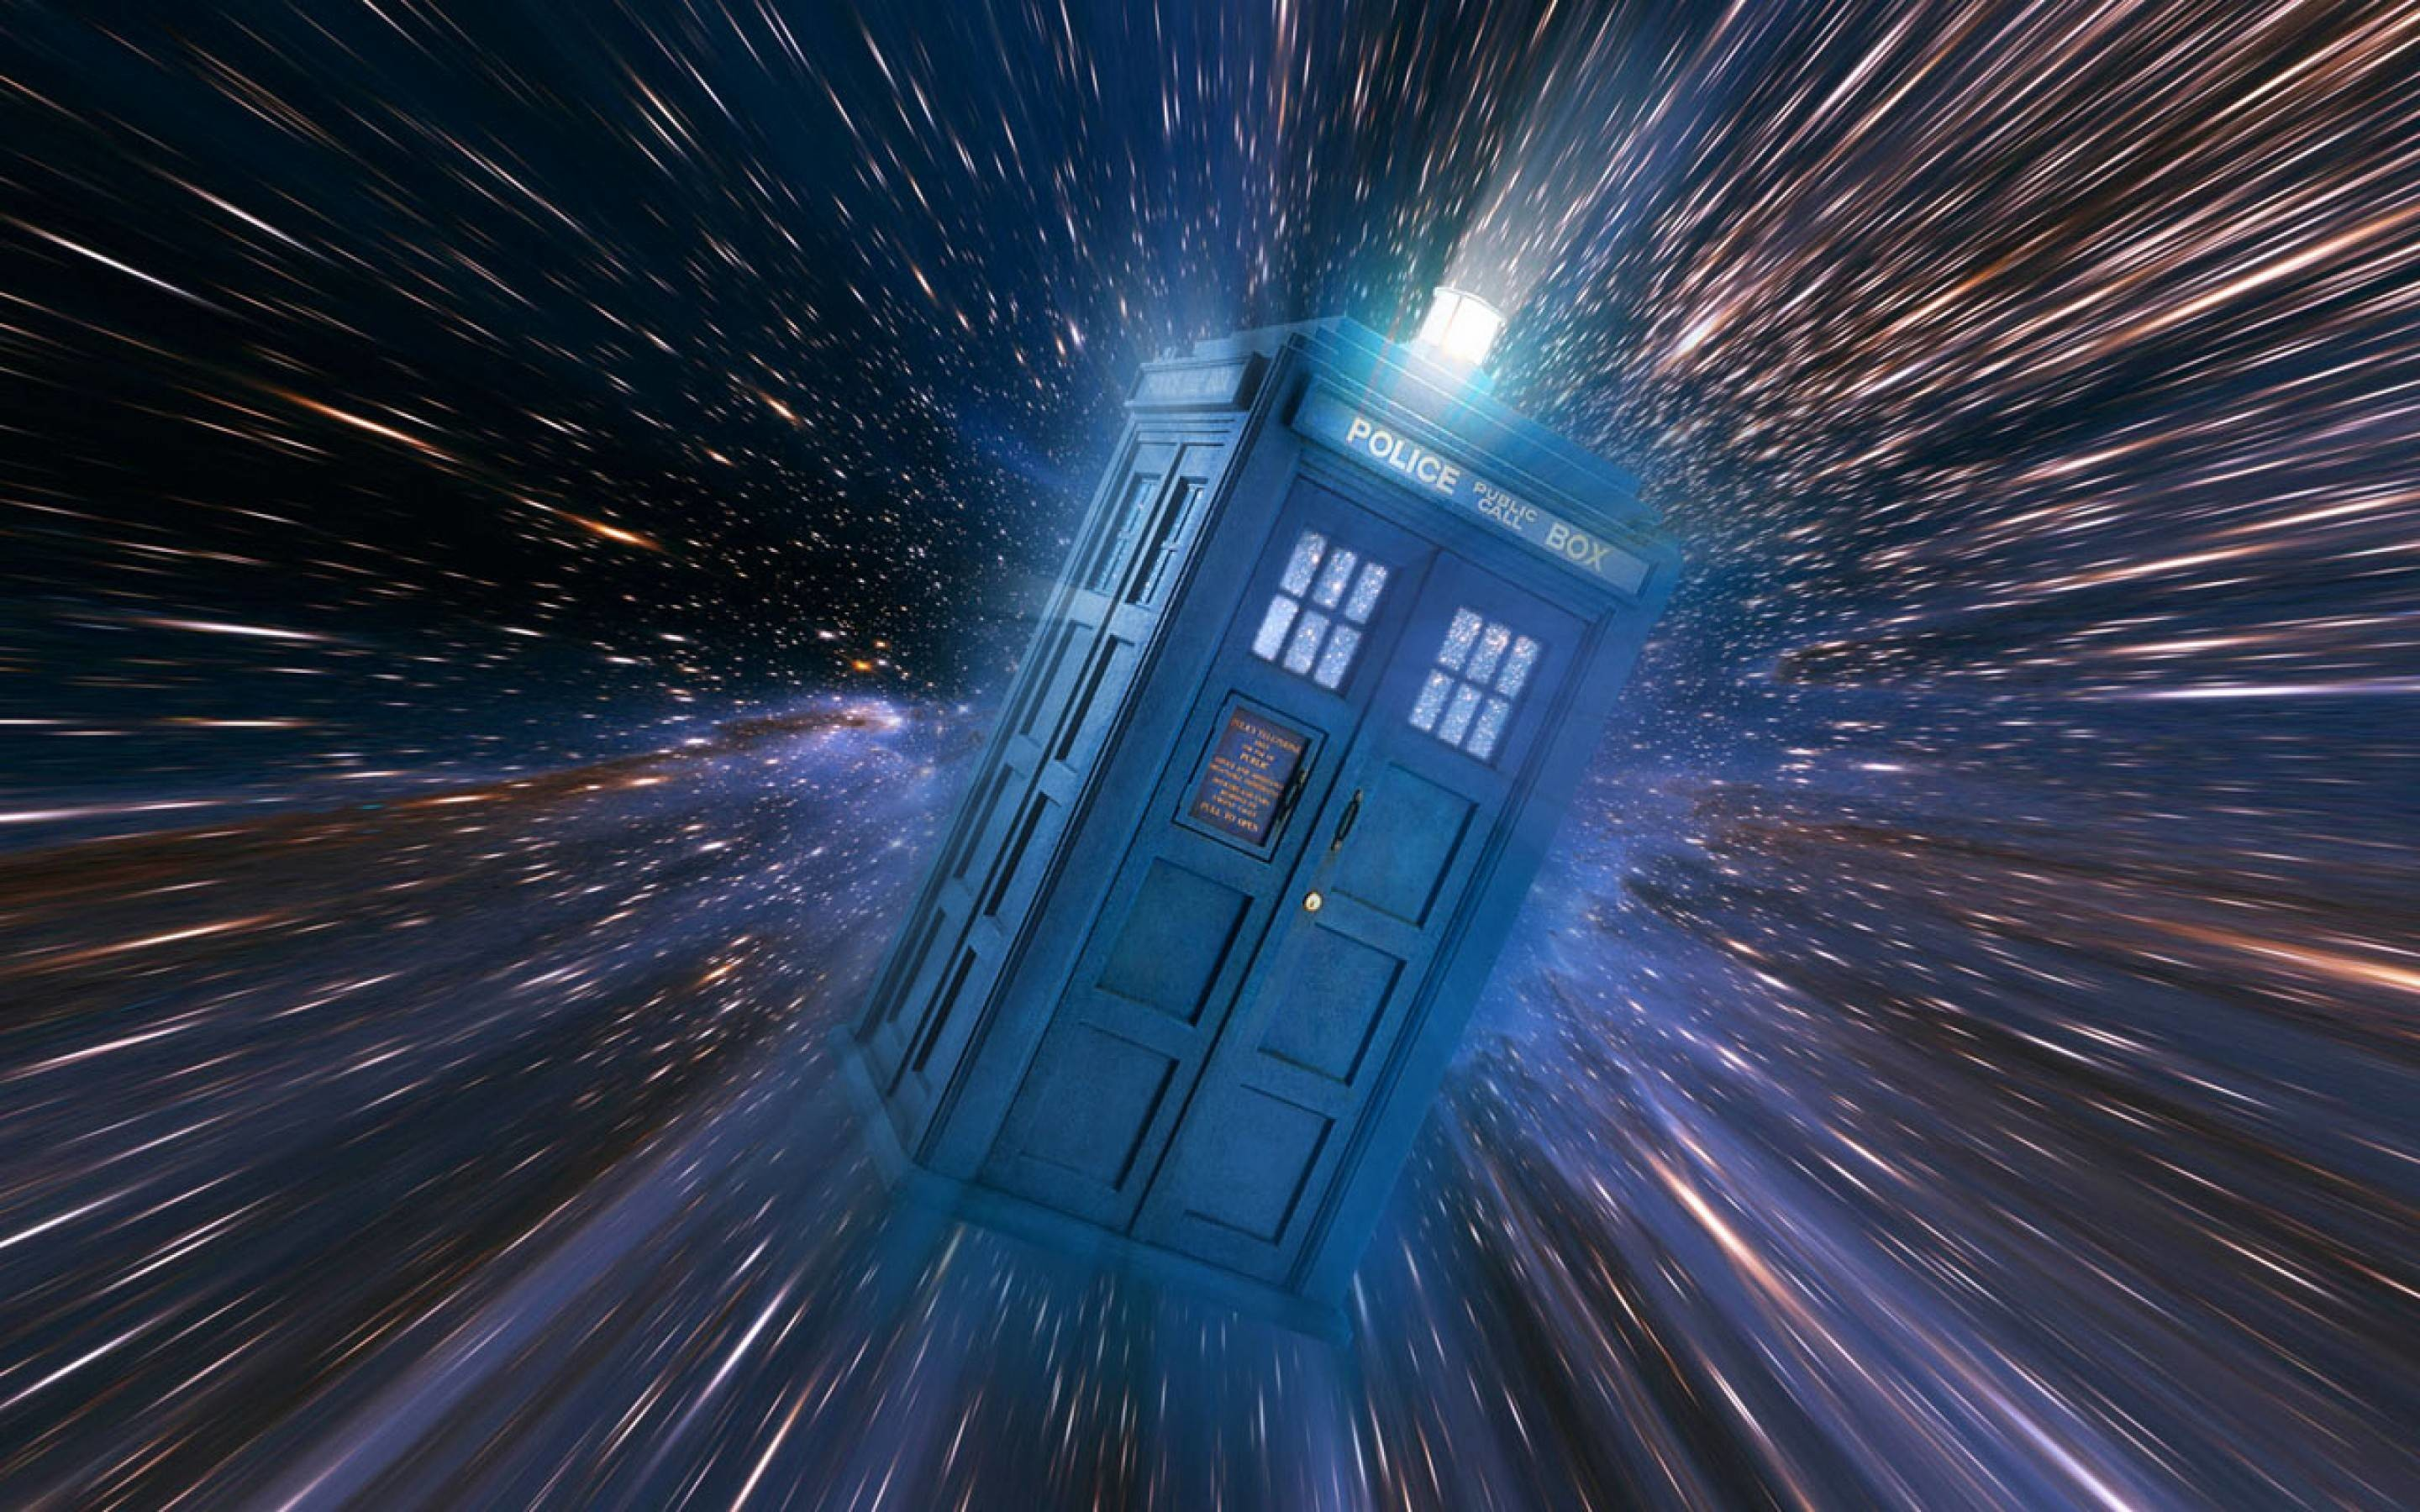 2880x1800 Wallpapers For > Doctor Who Tardis Wallpaper